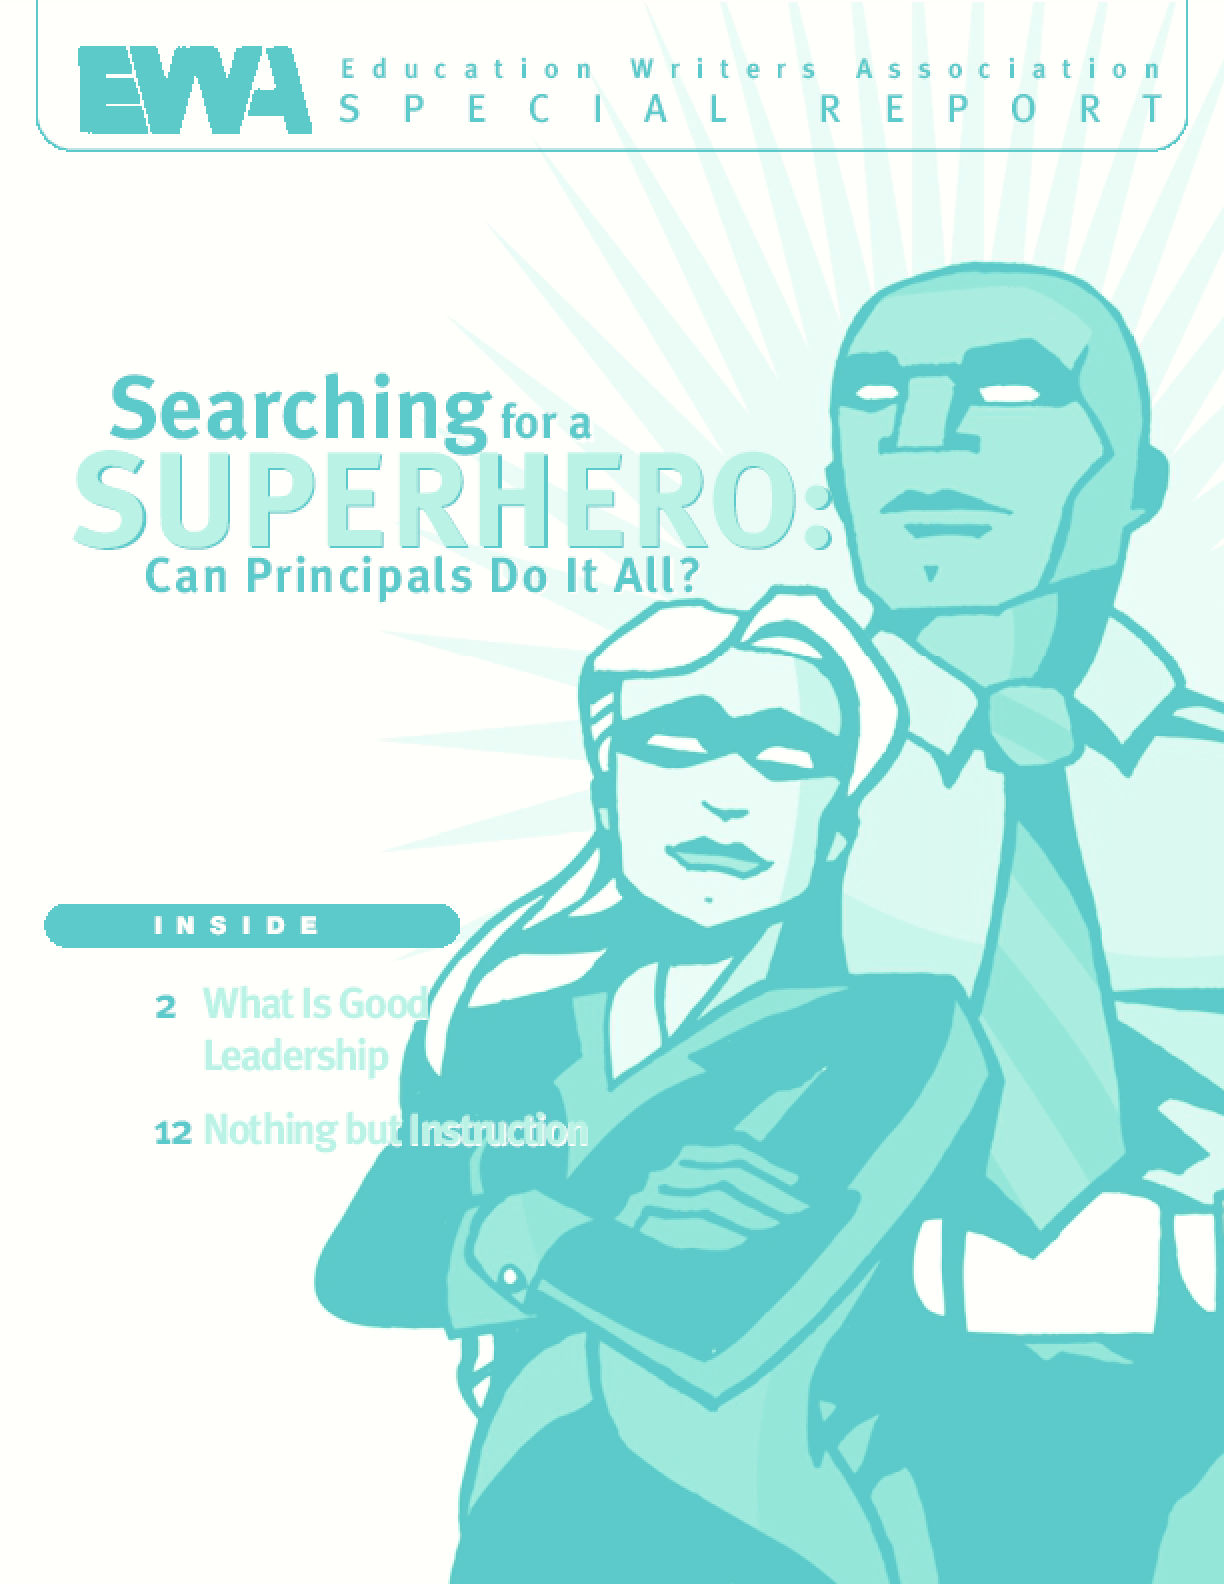 Searching for a Superhero: Can Principals Do It All?